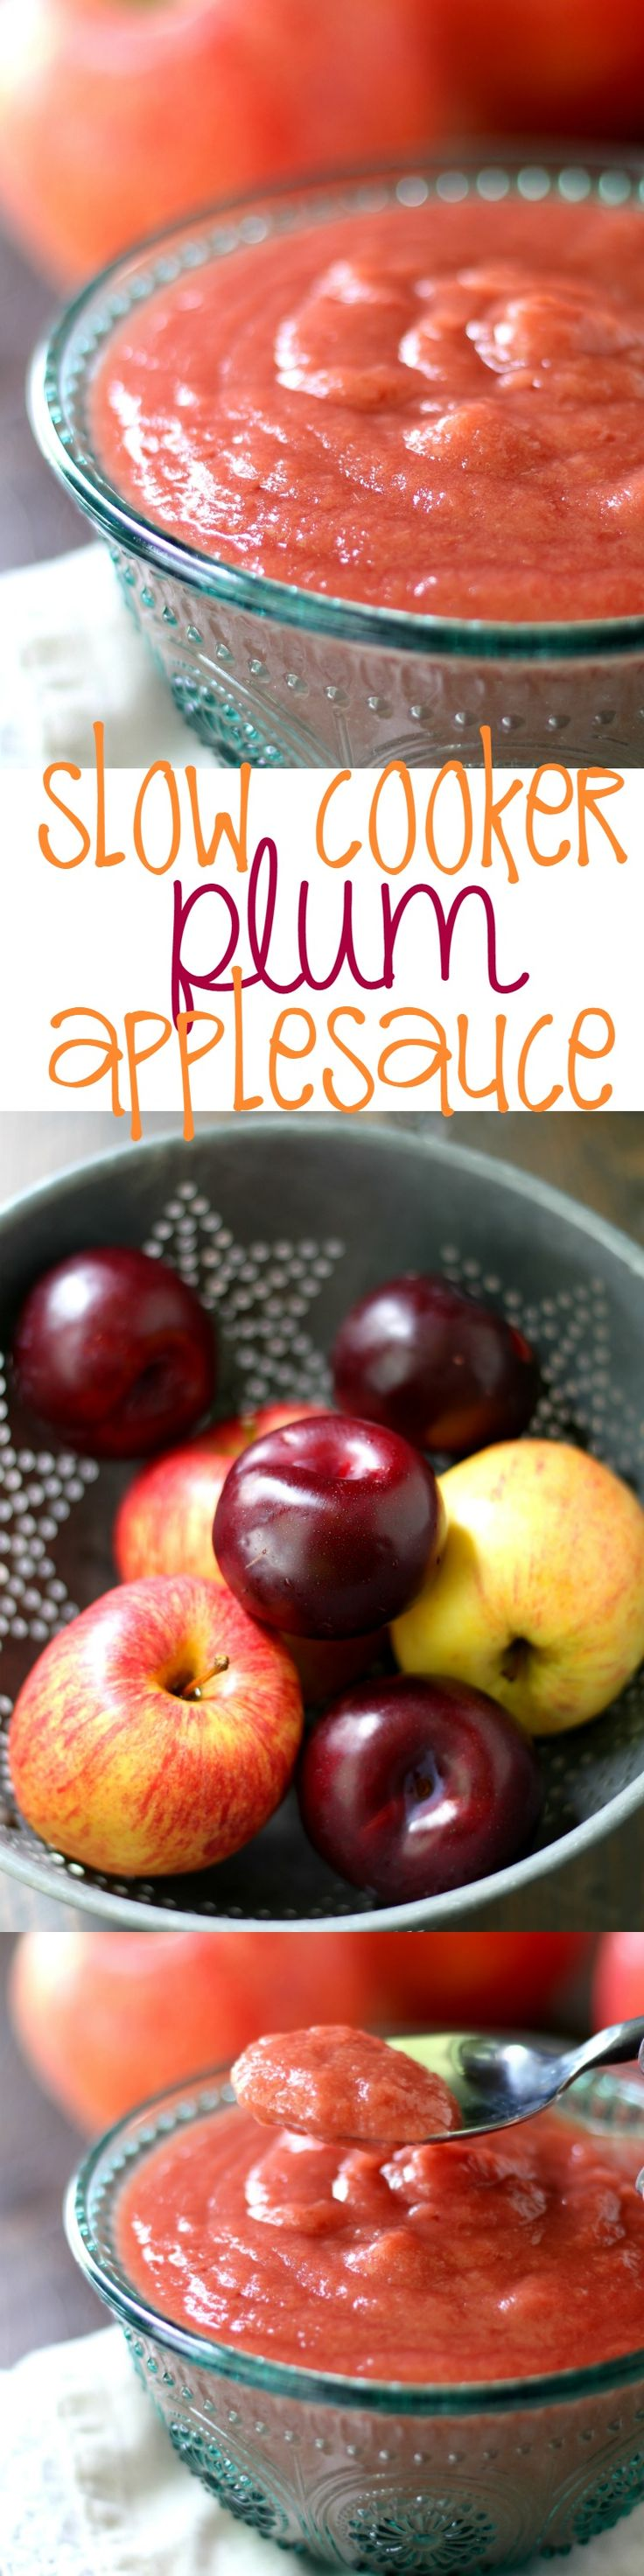 Naturally sweet healthy homemade slow cooker applesauce made pretty pink with the addition of plums. #AD #KrogerLittleSnugglers #Pmedia